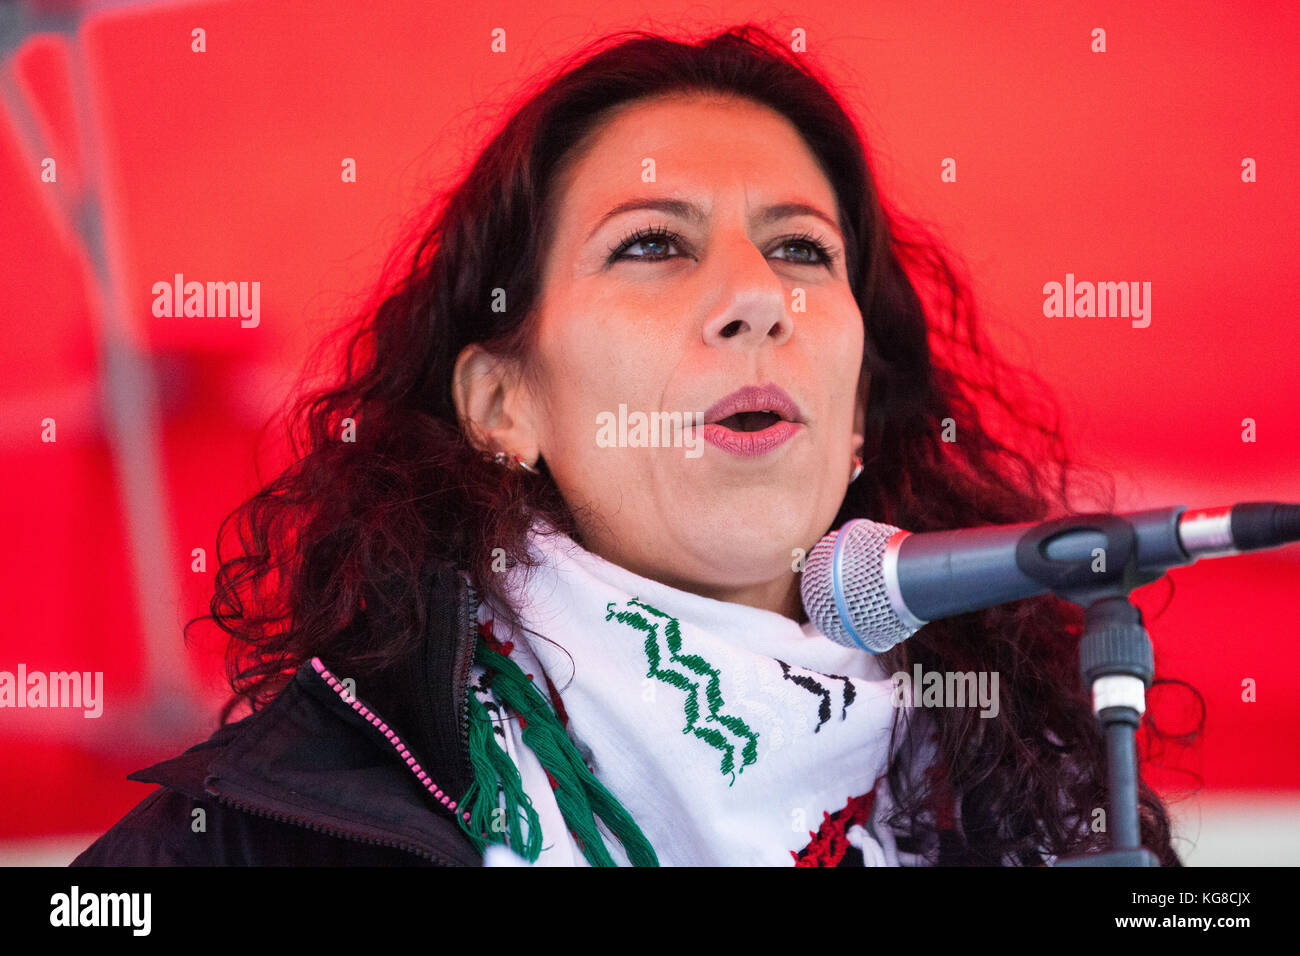 London, UK. 4th November, 2017. Dalia El-Saleh of the Association of the Palestinian Community in the UK (APCUK), Stock Photo